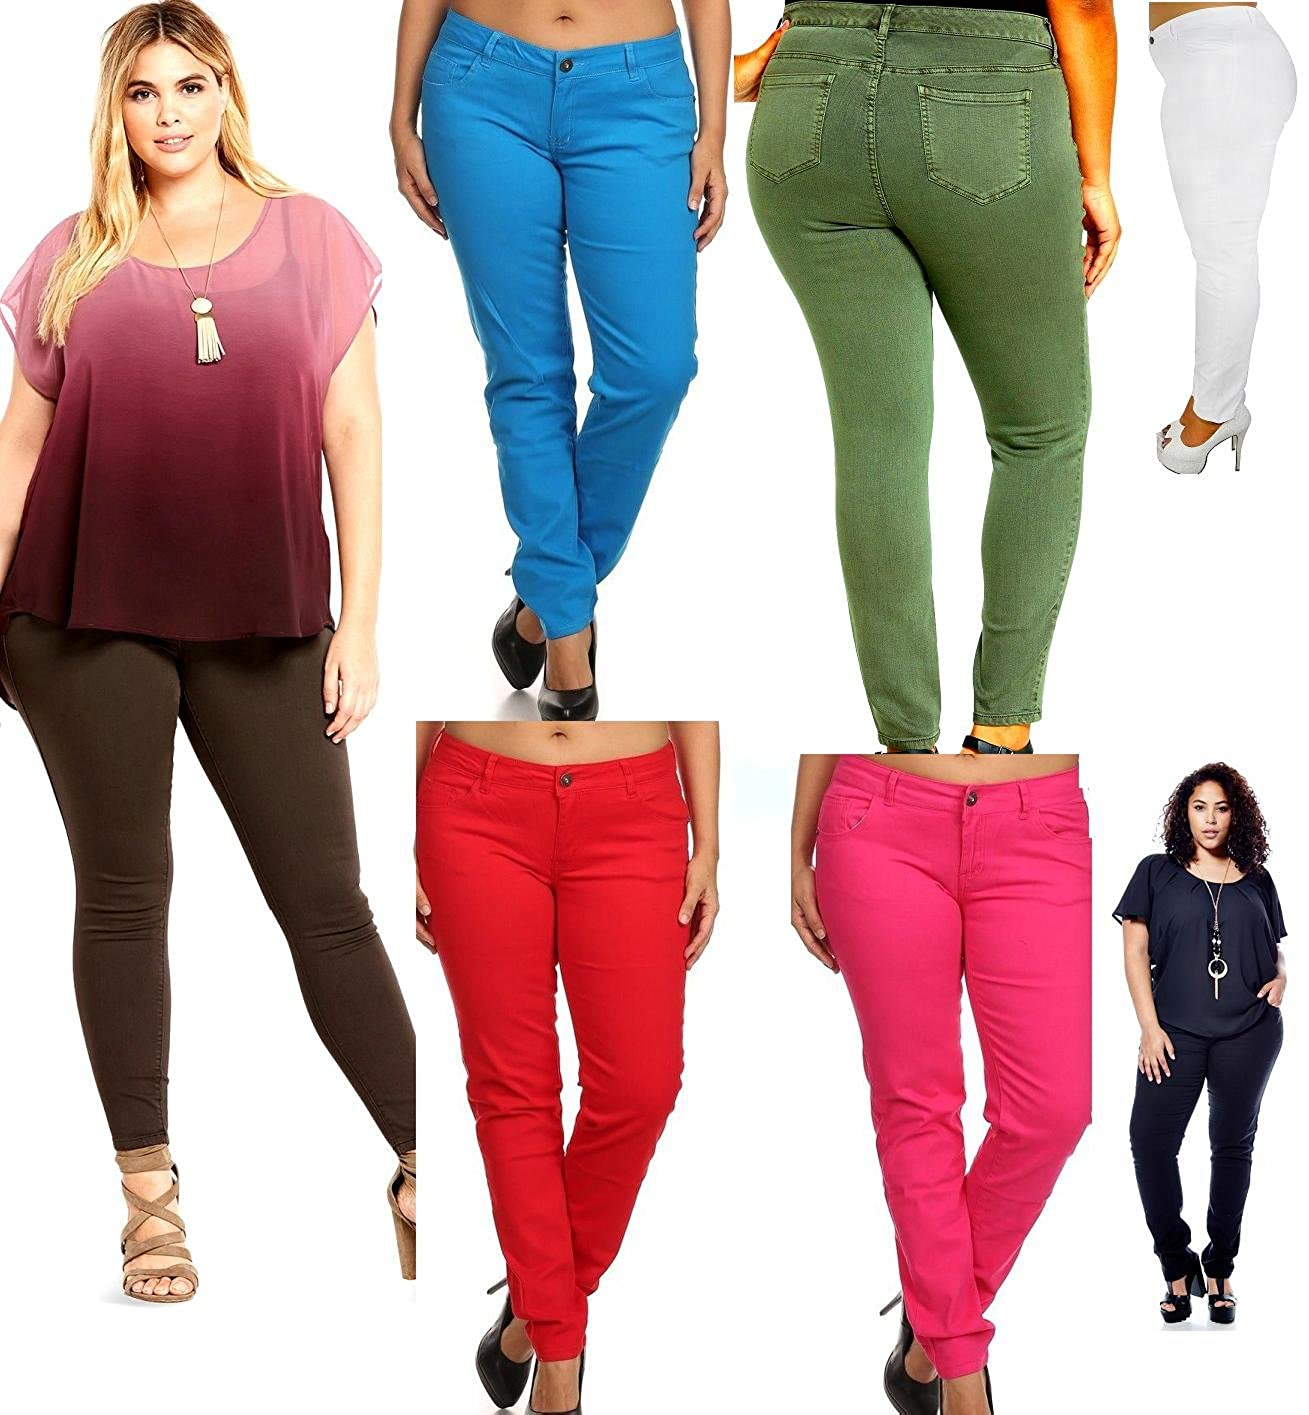 379231e040 NEW 1826 Stretch premium Twill Pants MID-RISD Womens Plus Size Skinny PANTS  at Amazon Women s Clothing store